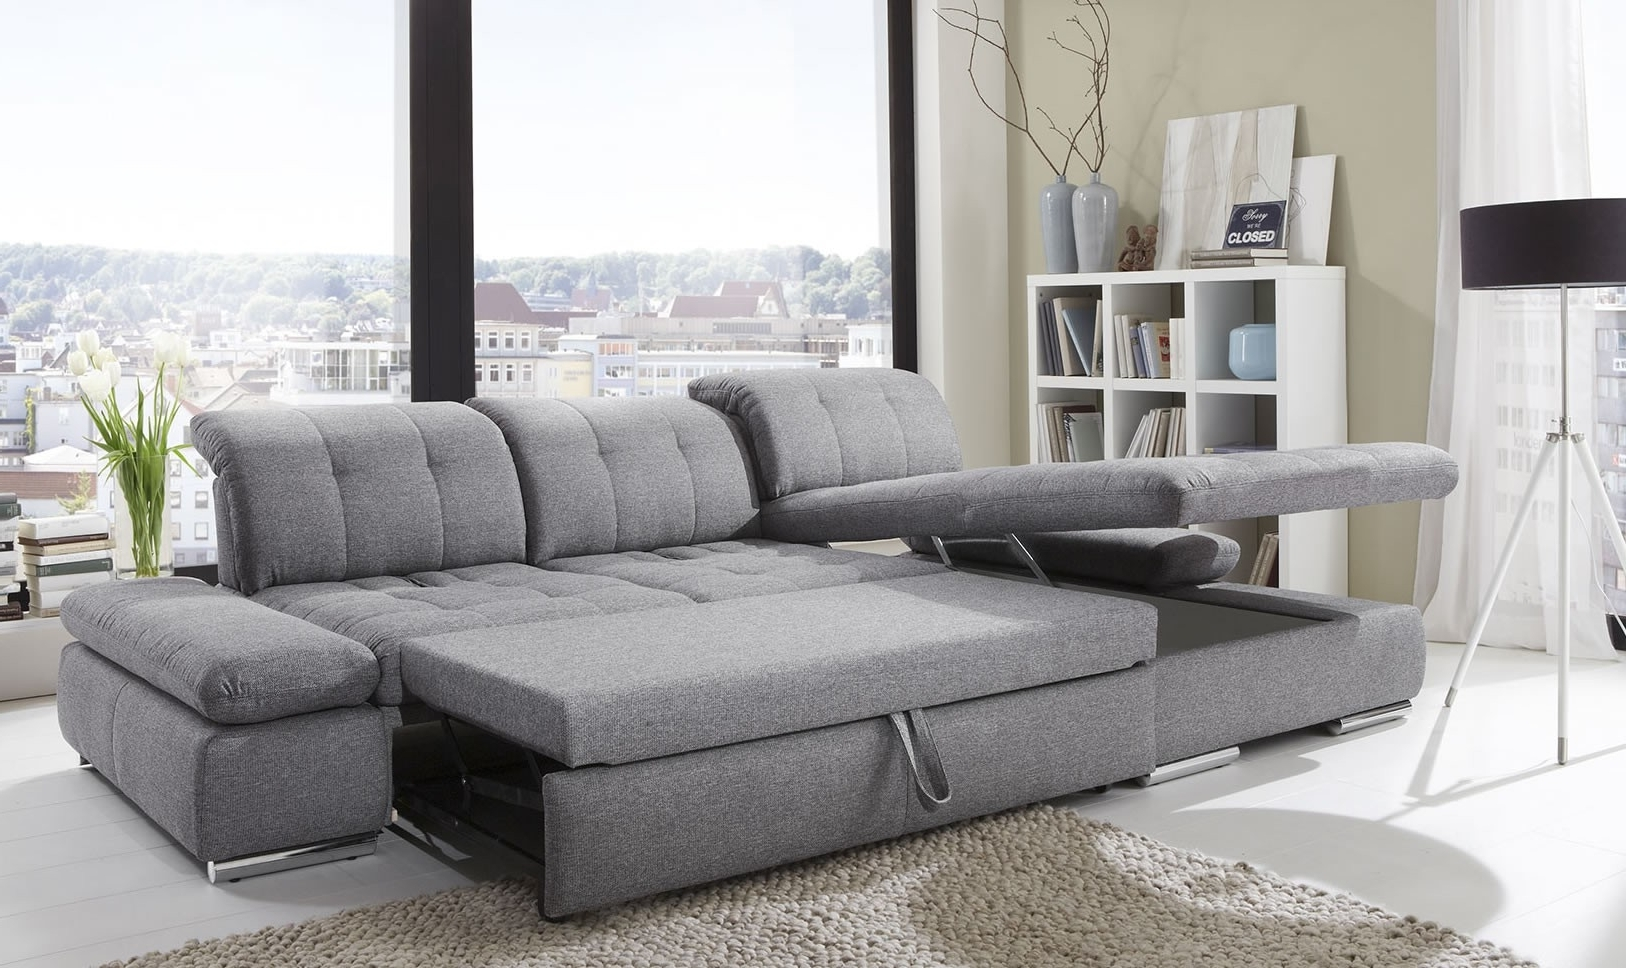 Sectional Sleeper Sofa Is Cool Sleeper Furniture Is Cool Throughout Widely Used Sleeper Sectional Sofas (View 13 of 20)